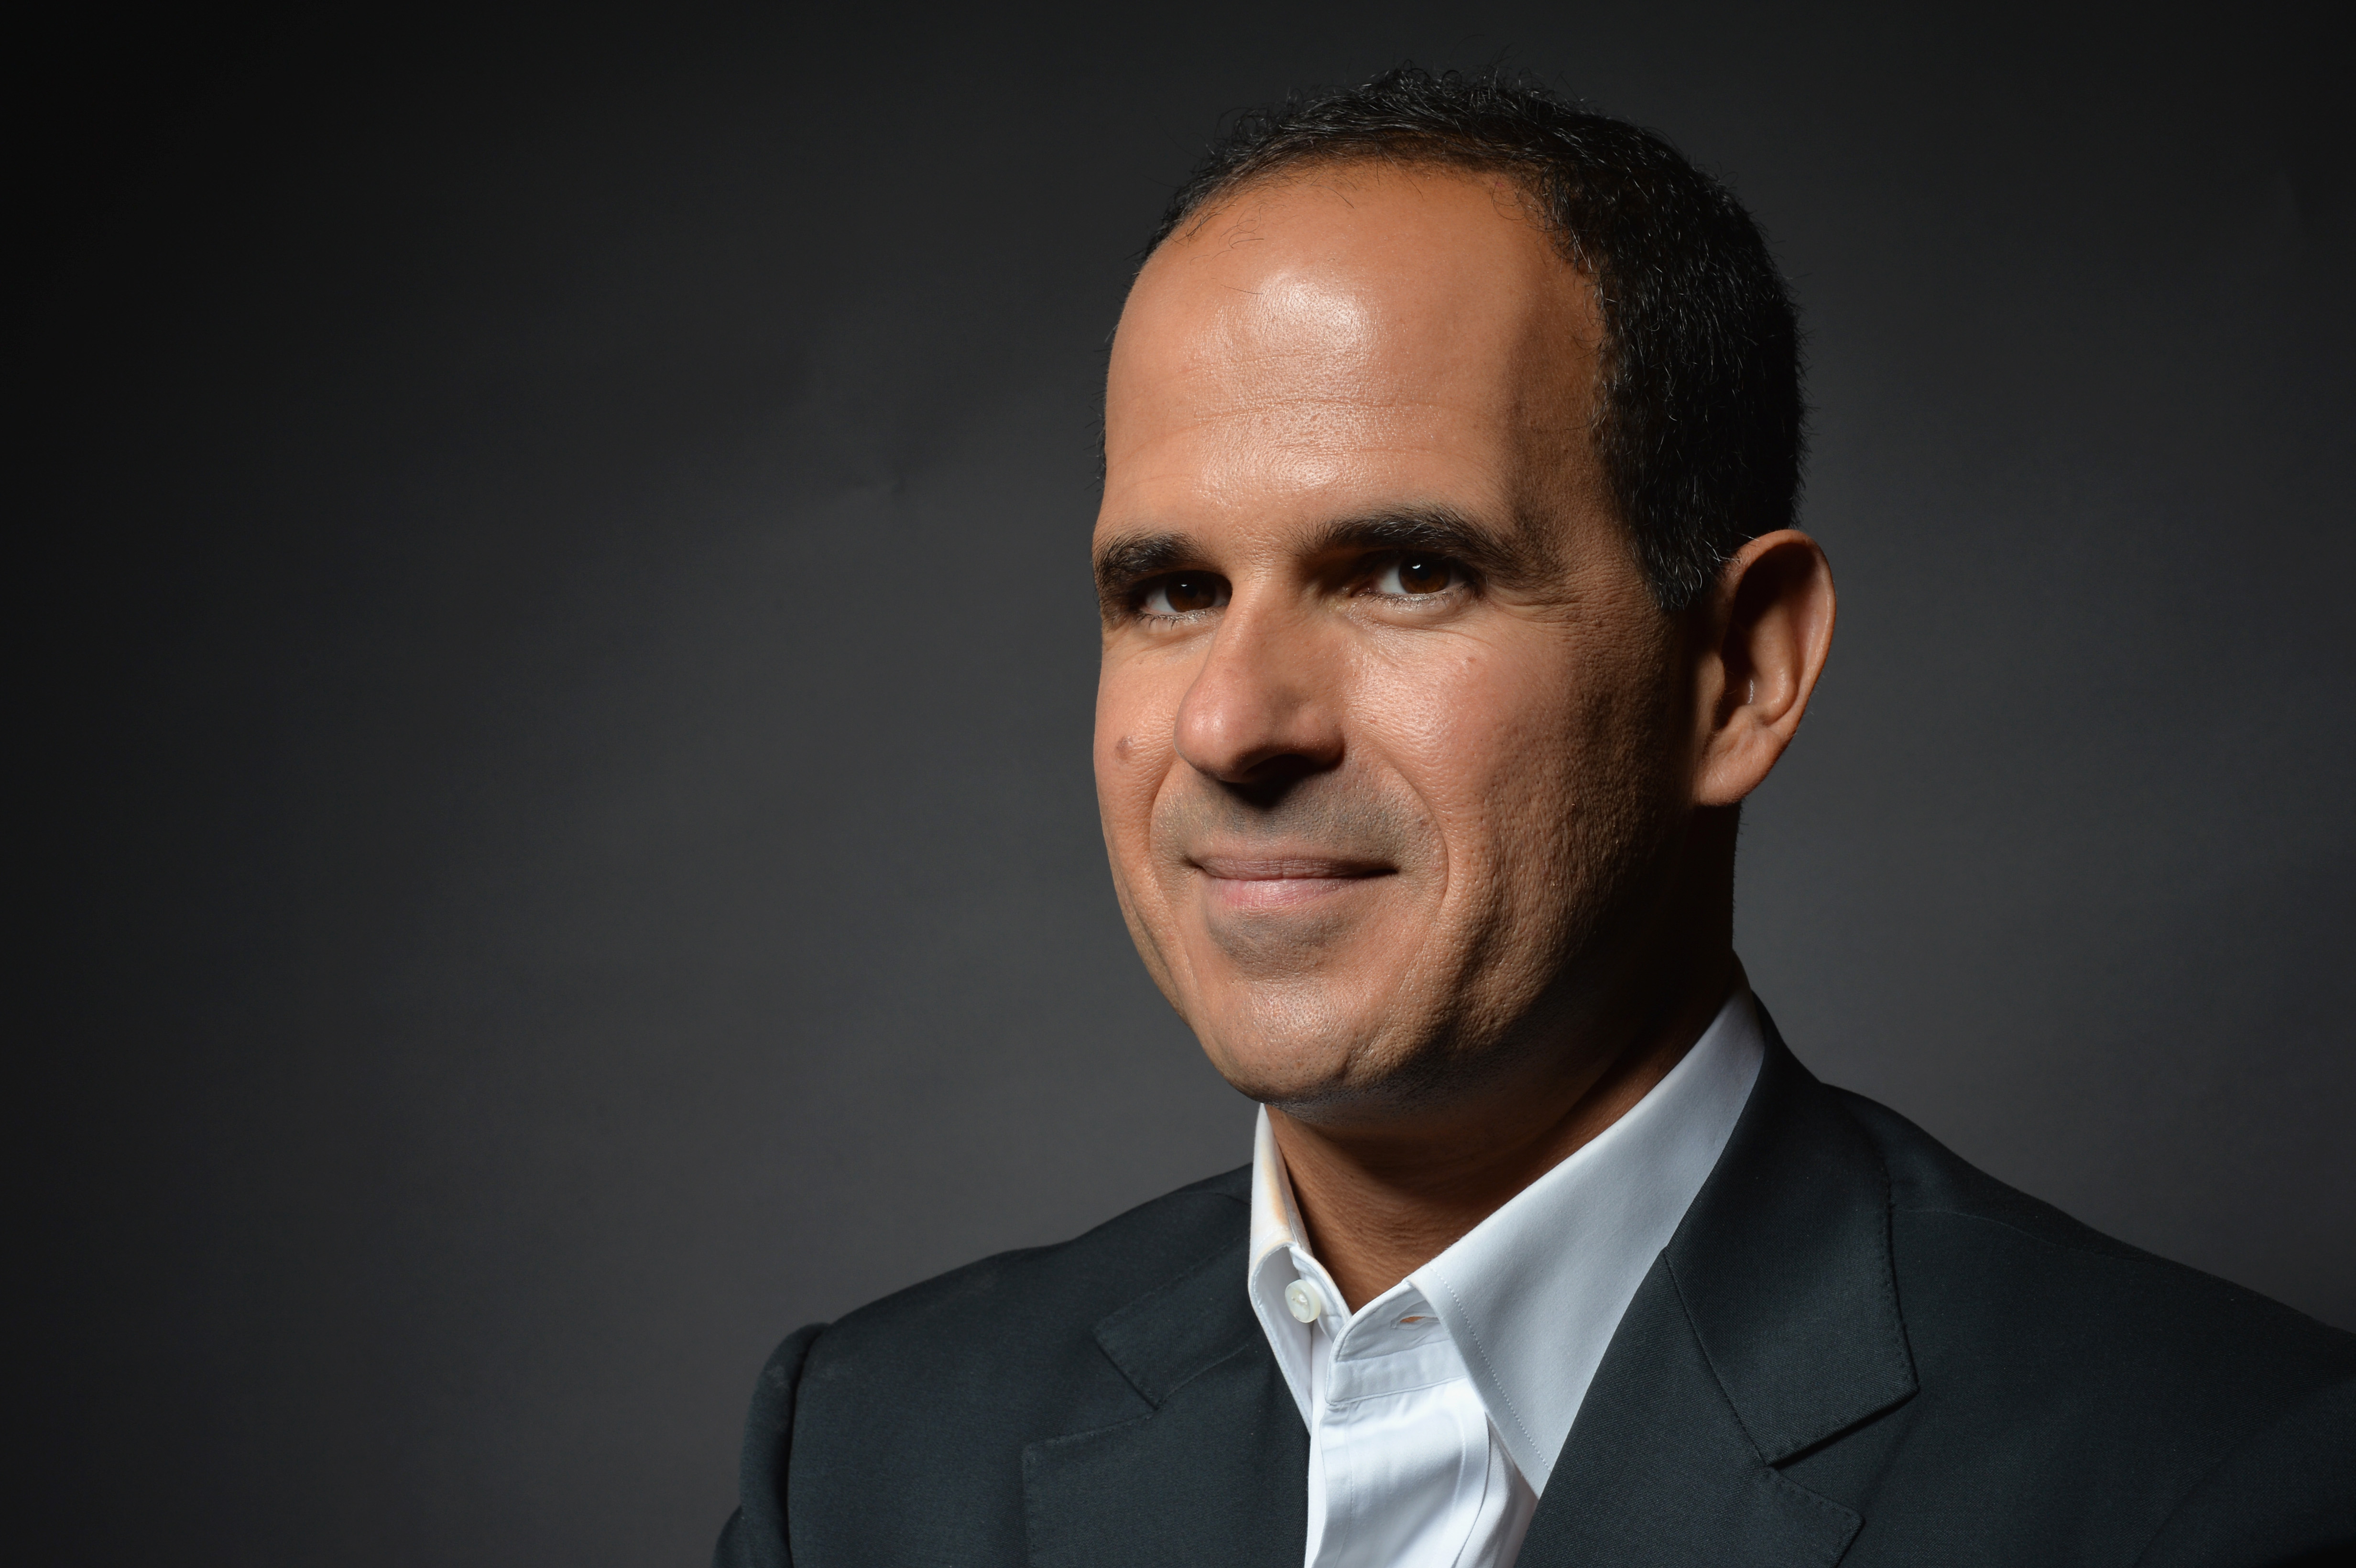 who is marcus lemonis married to